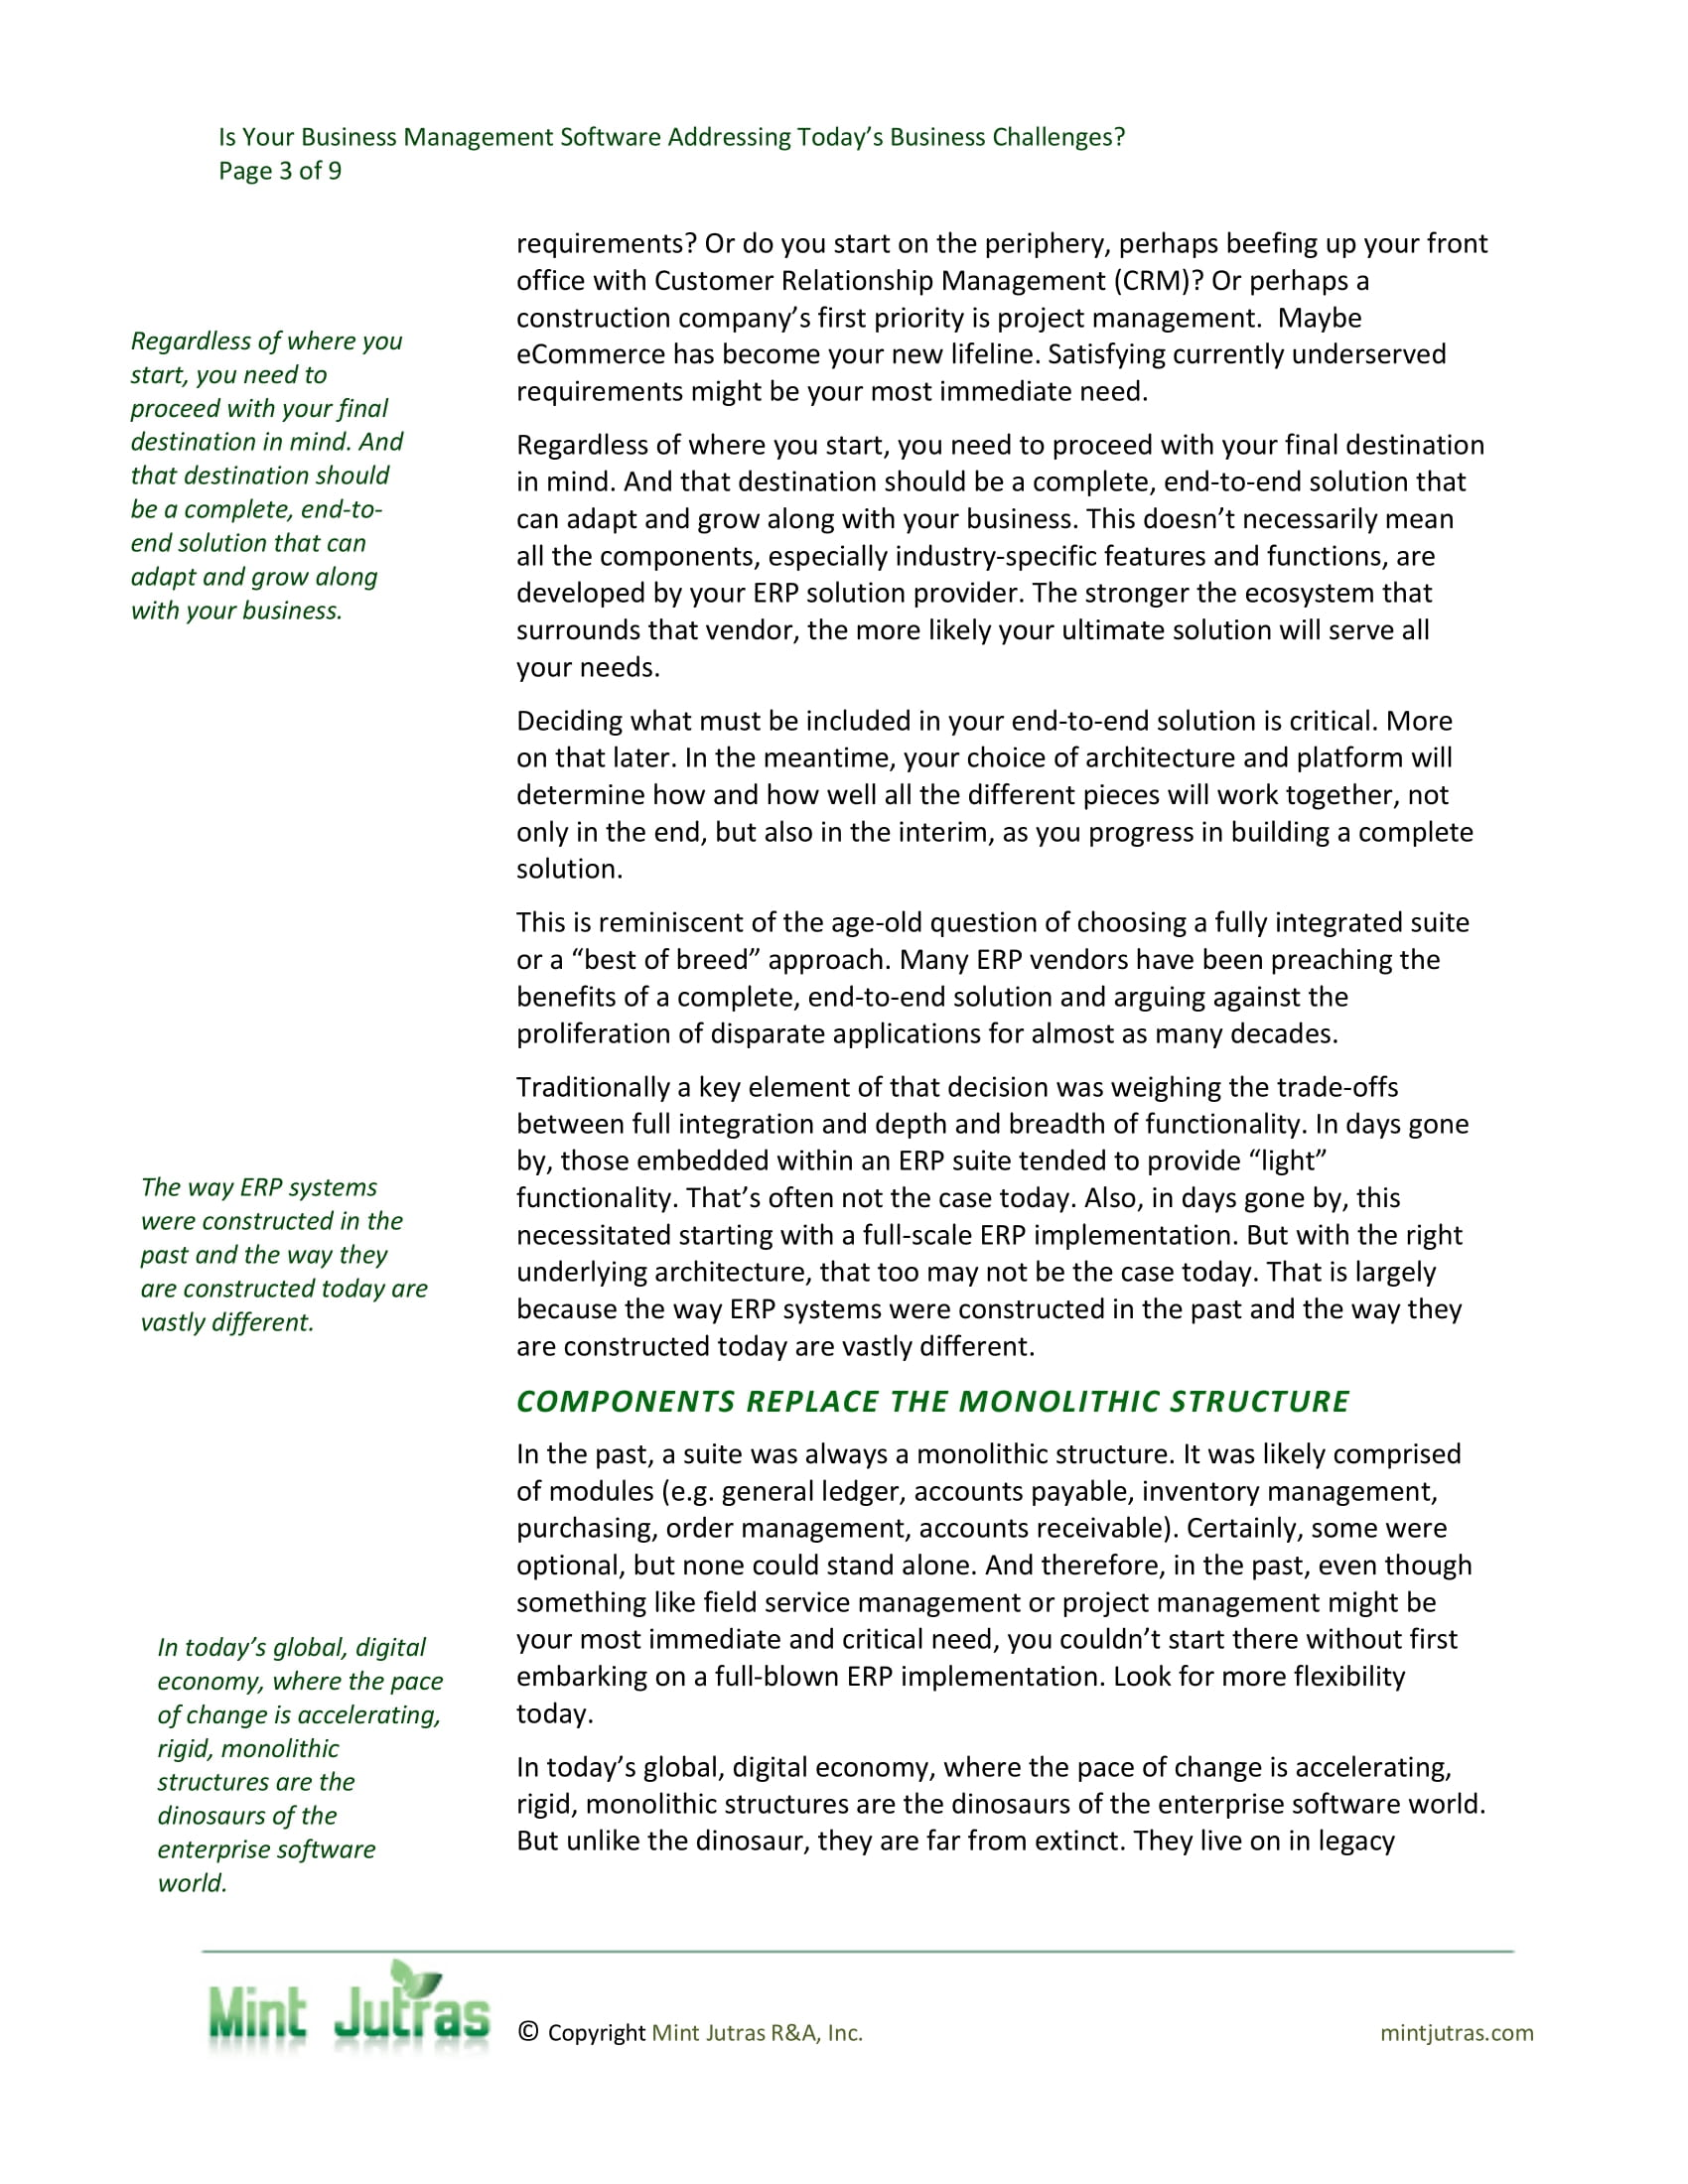 Meet Today's Business Challenges by Replacing Your Legacy ERP System, page 2